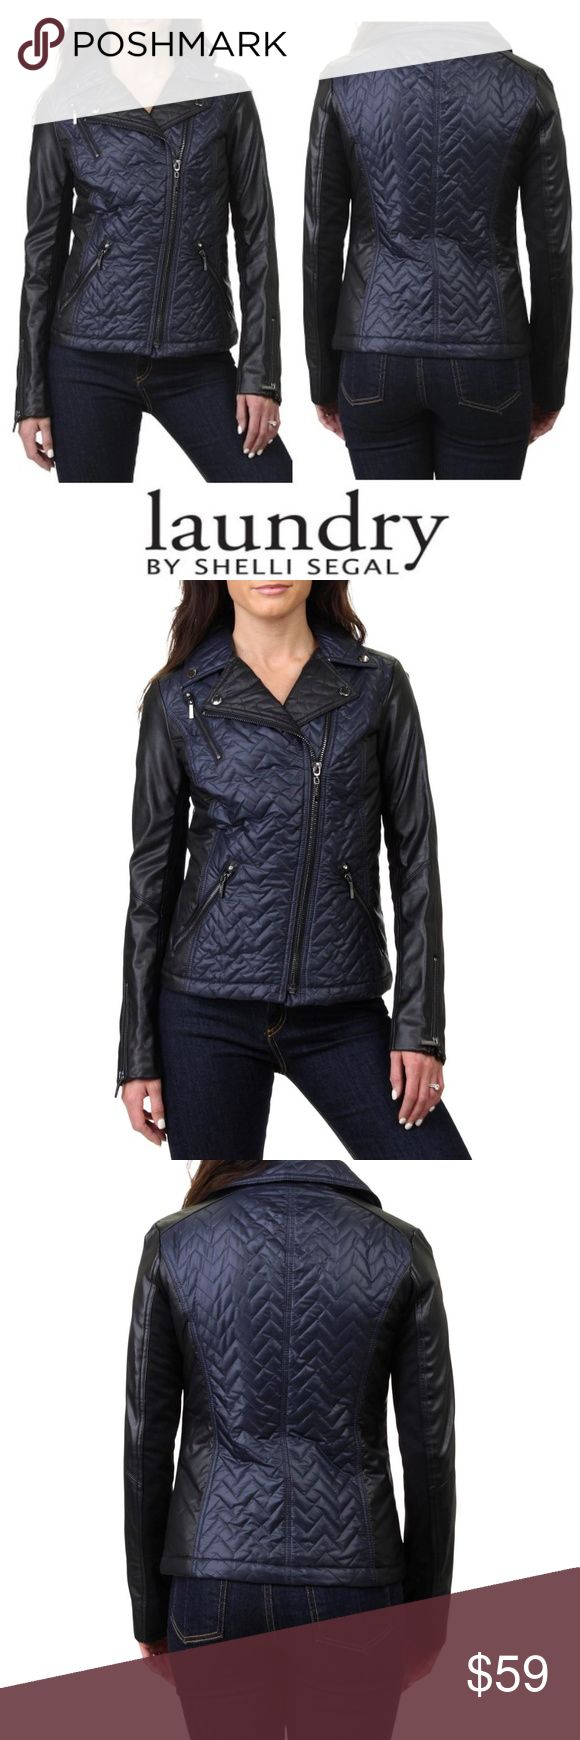 NWT LAUNDRY Quilted Faux Leather Motorcycle Jacket Manufacturer: Laundry by Shel…